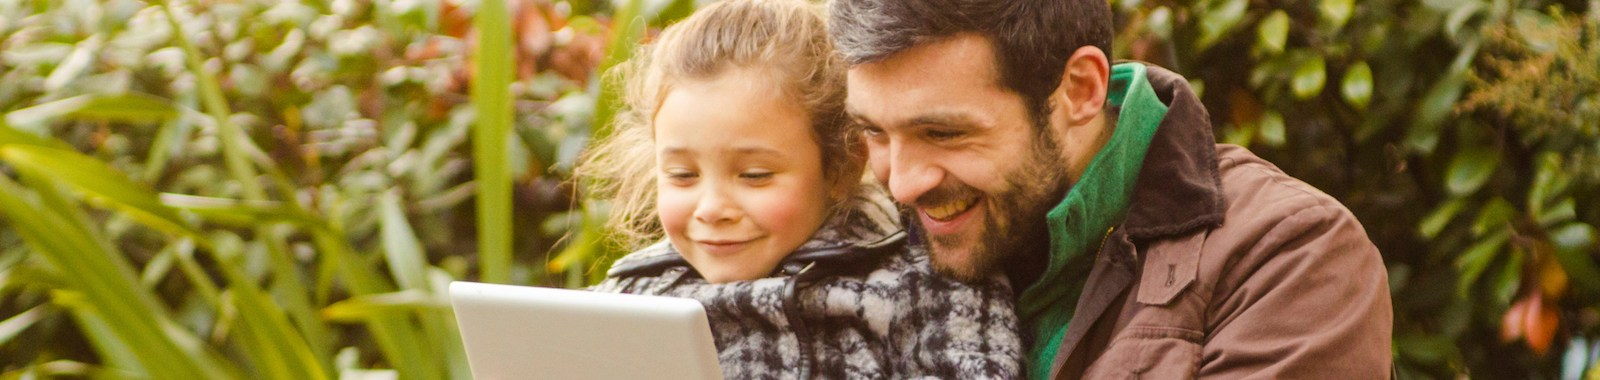 Father And Daughter Using Tablet Sitting On A Bench